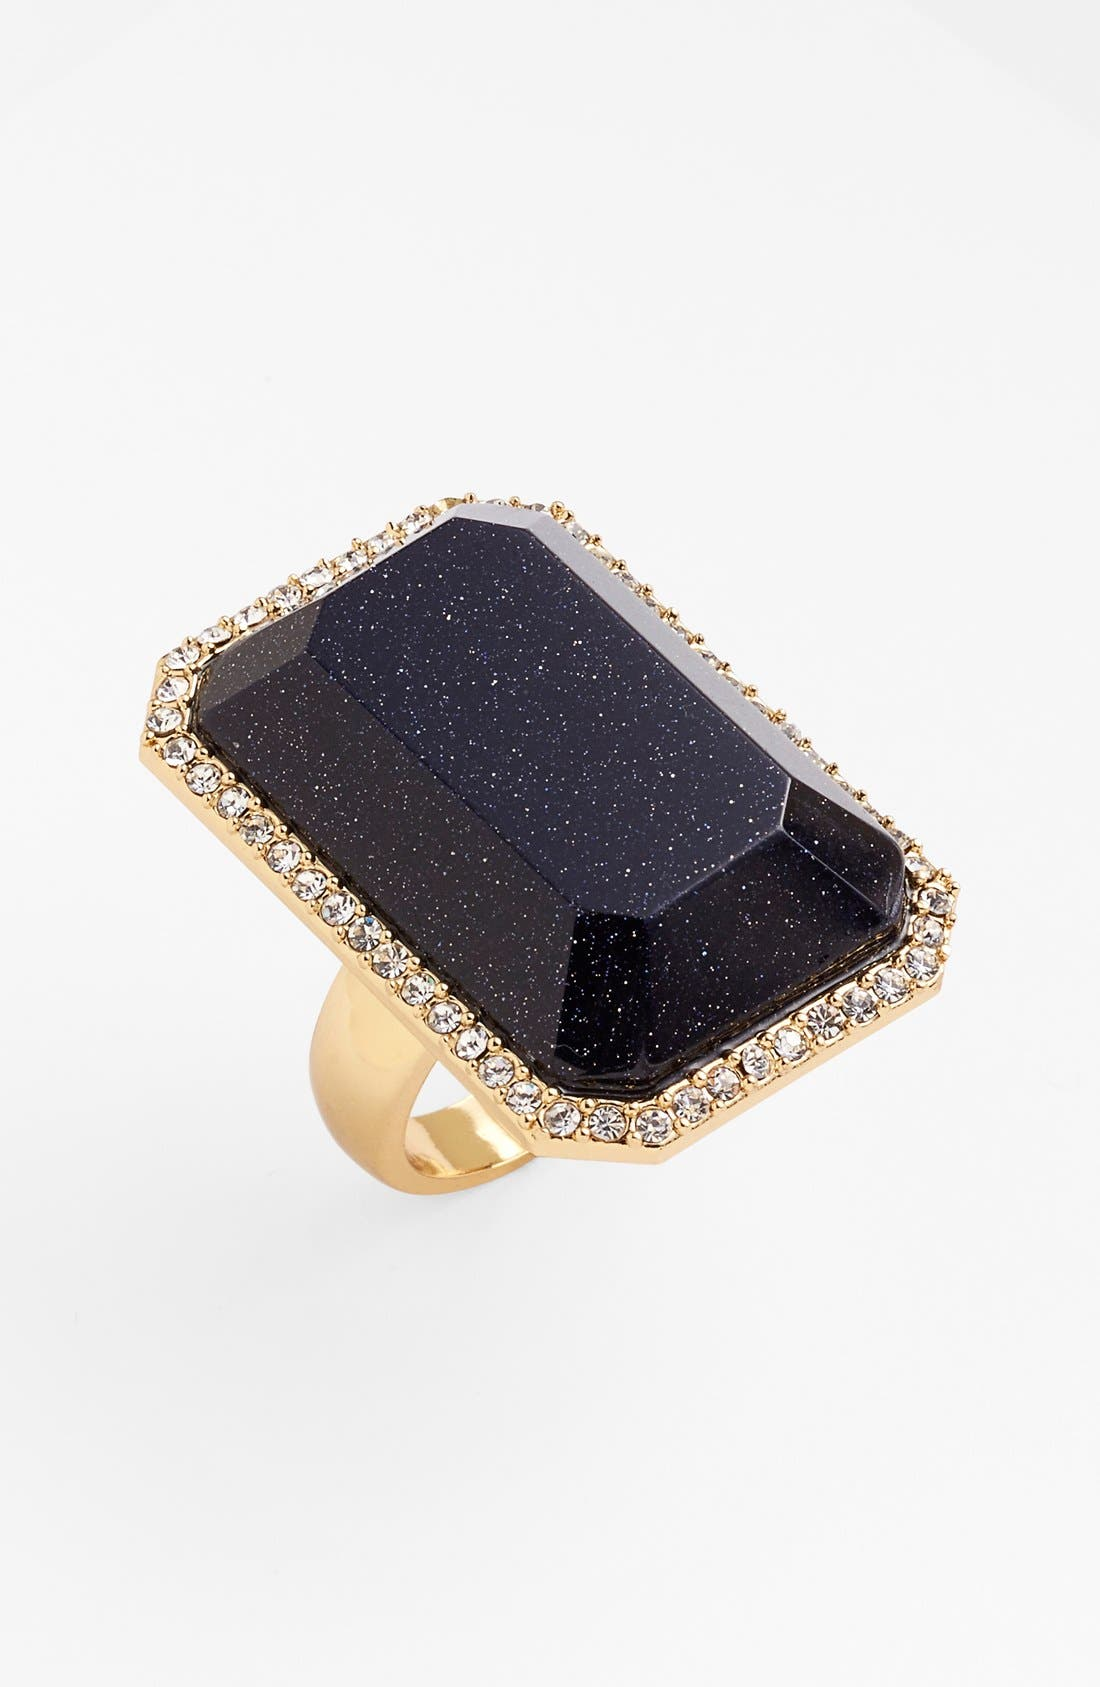 Alternate Image 1 Selected - kate spade new york 'night sky jewels' semiprecious stone ring